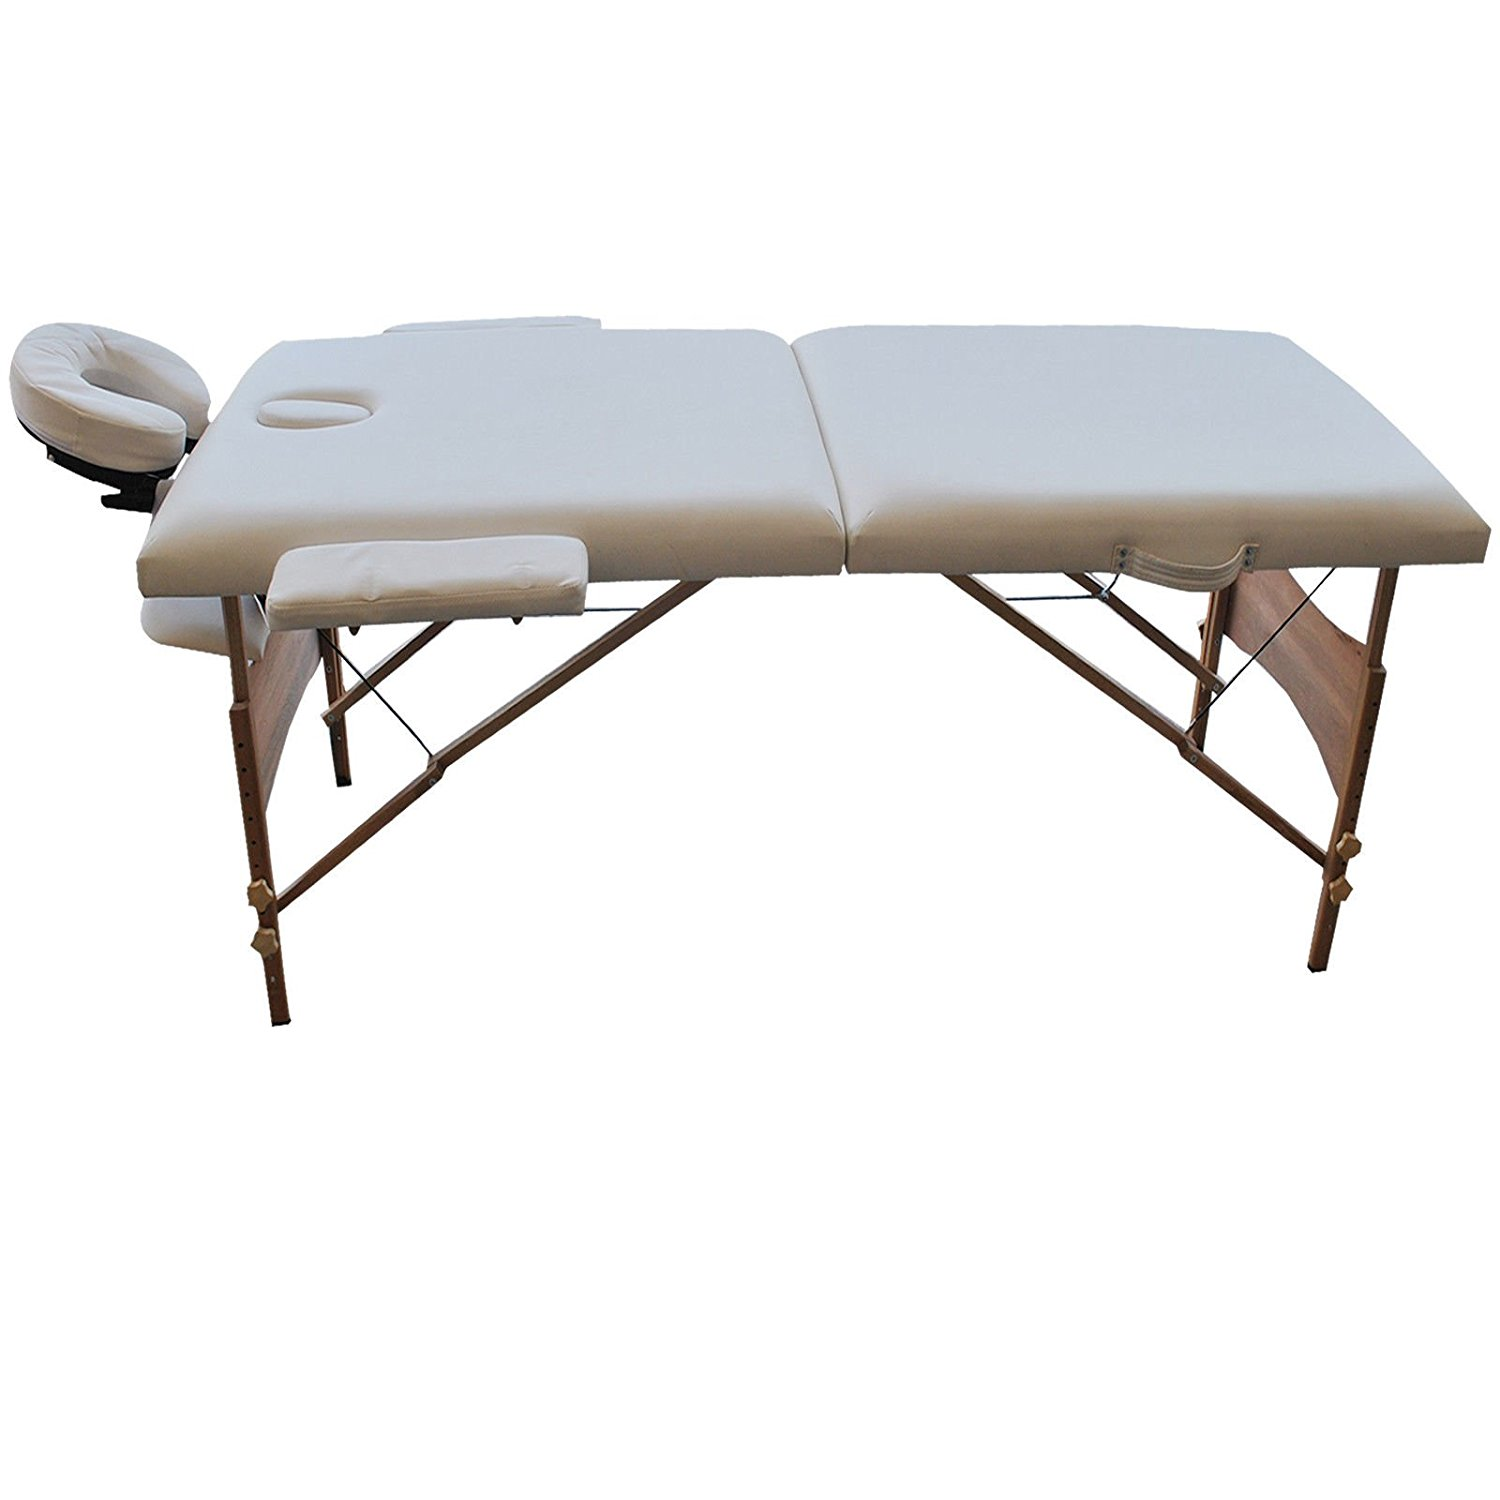 "84"" L portable massage white table facial spa bed tattoo free carry case white new"